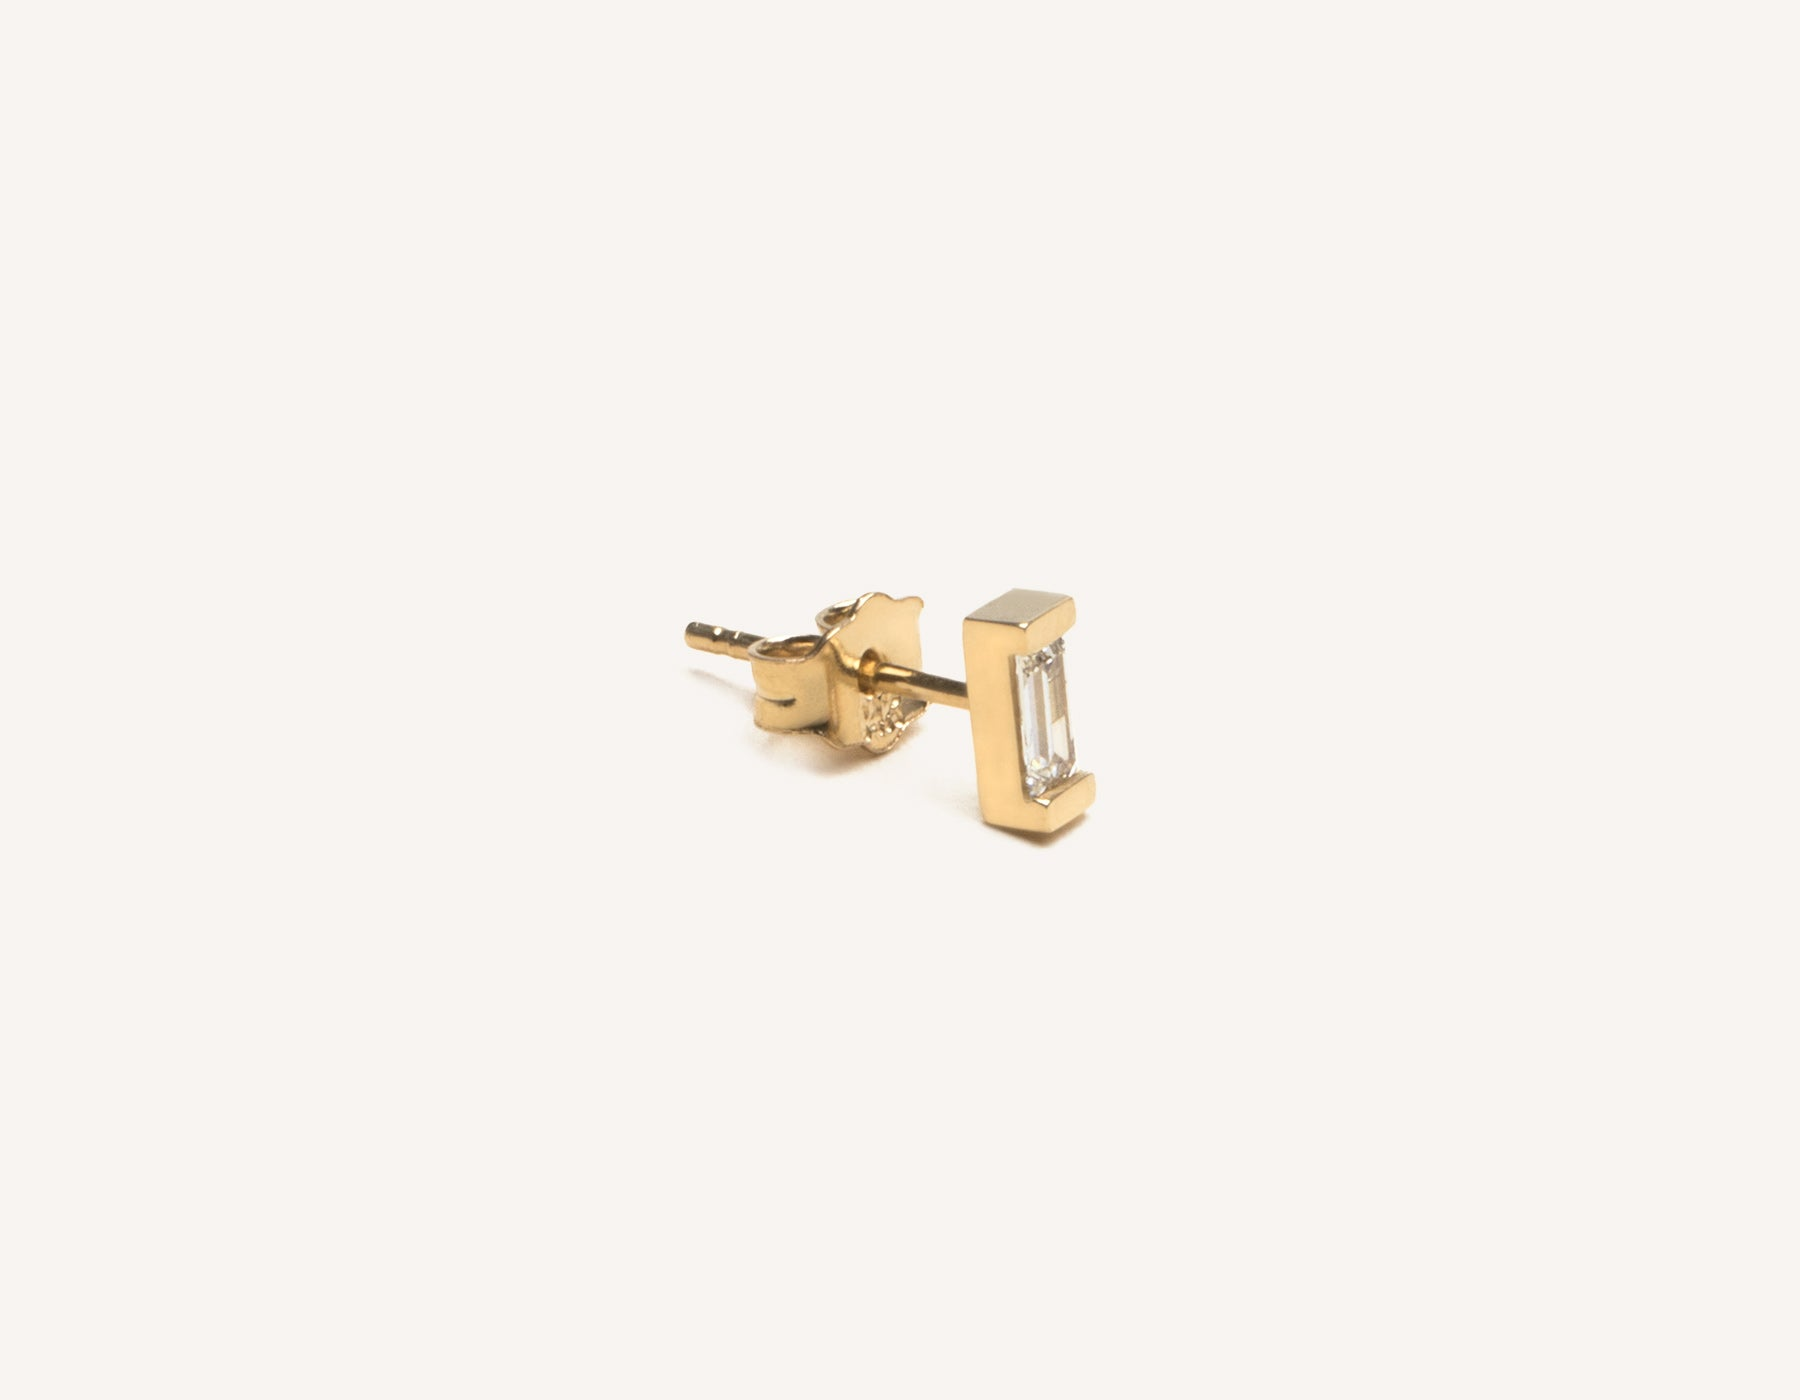 Classic dainty Art Deco Baguette Diamond Earrings from Vrai & Oro made from 14k solid gold with a post backing and baguette diamond in a channel setting, 14K Yellow Gold